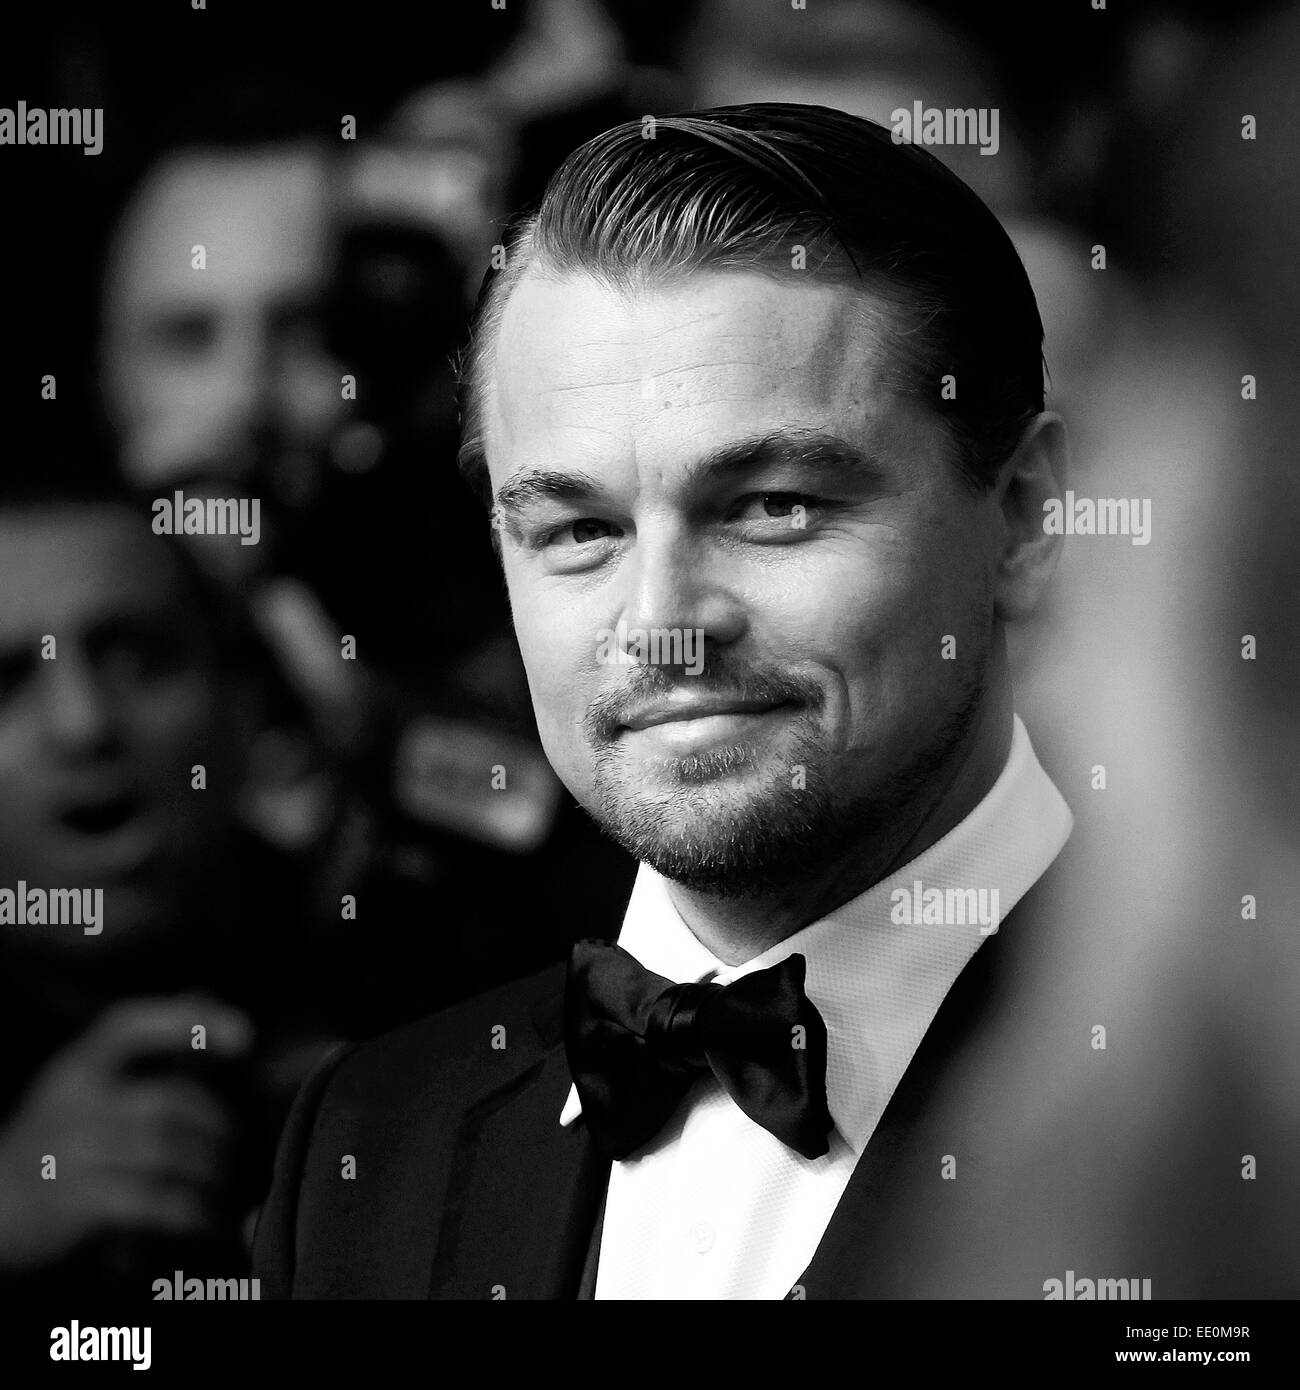 CANNES, FRANCE - MAY 15: Actor Leonardo DiCaprio attends the Premiere of 'The Great Gatsby' at The 66th - Stock Image